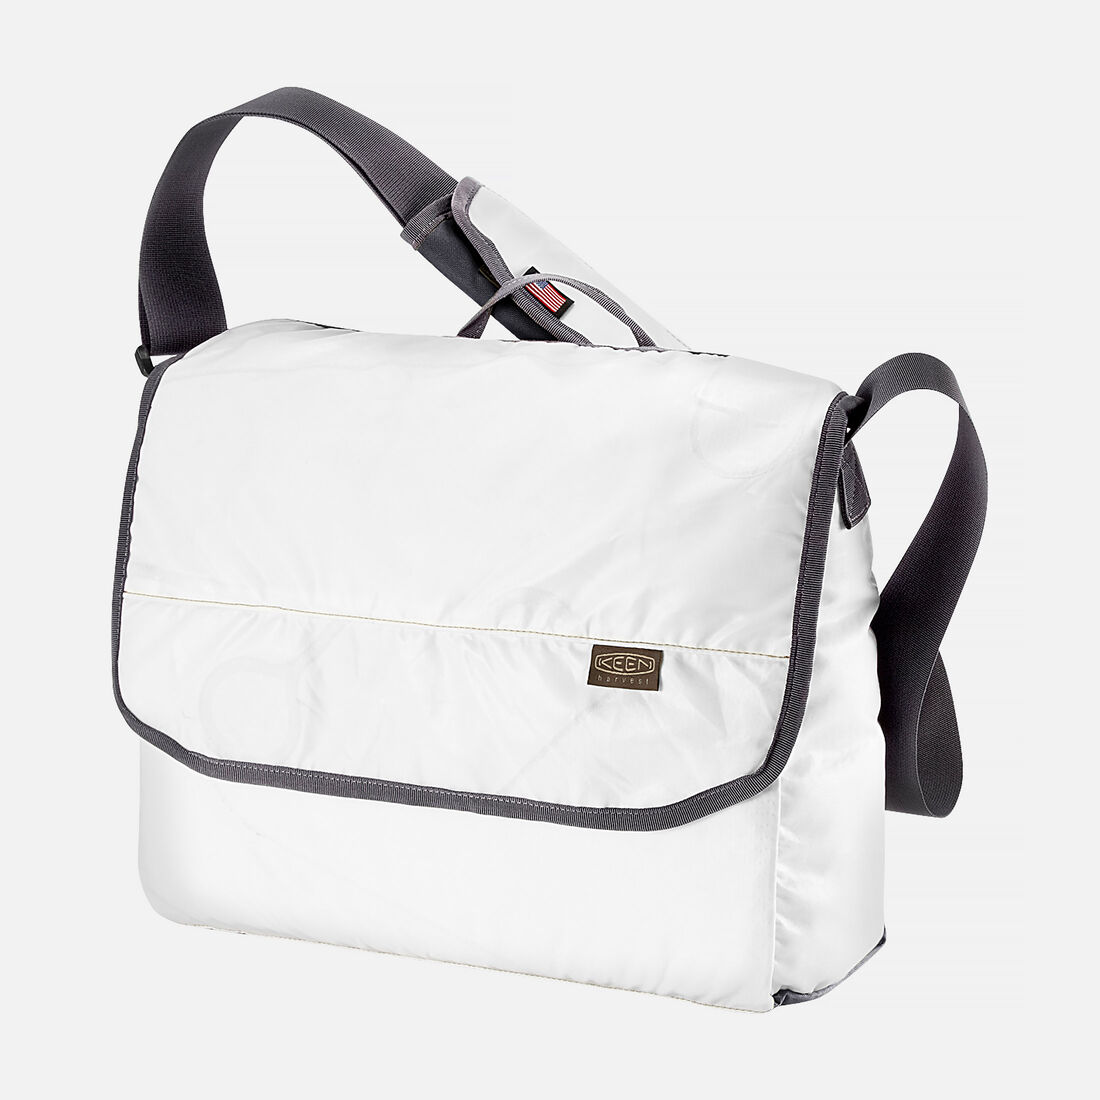 a1214654be5 Keen Harvest Iii Messenger Bag in White/Grey - large view.